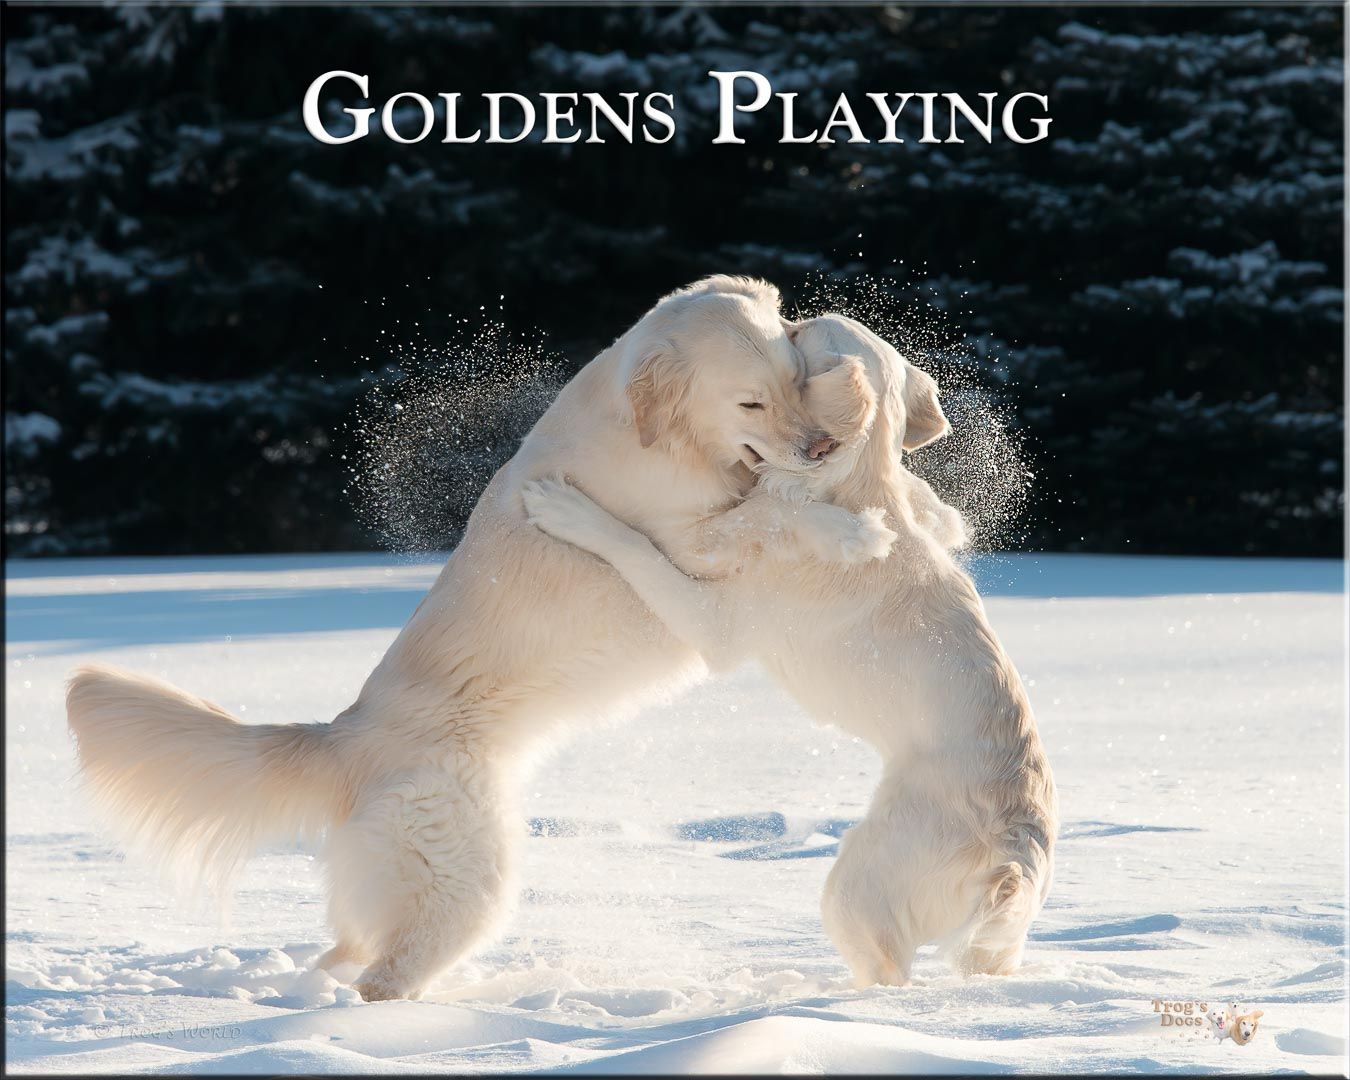 Two Golden Retrievers playing in the snow